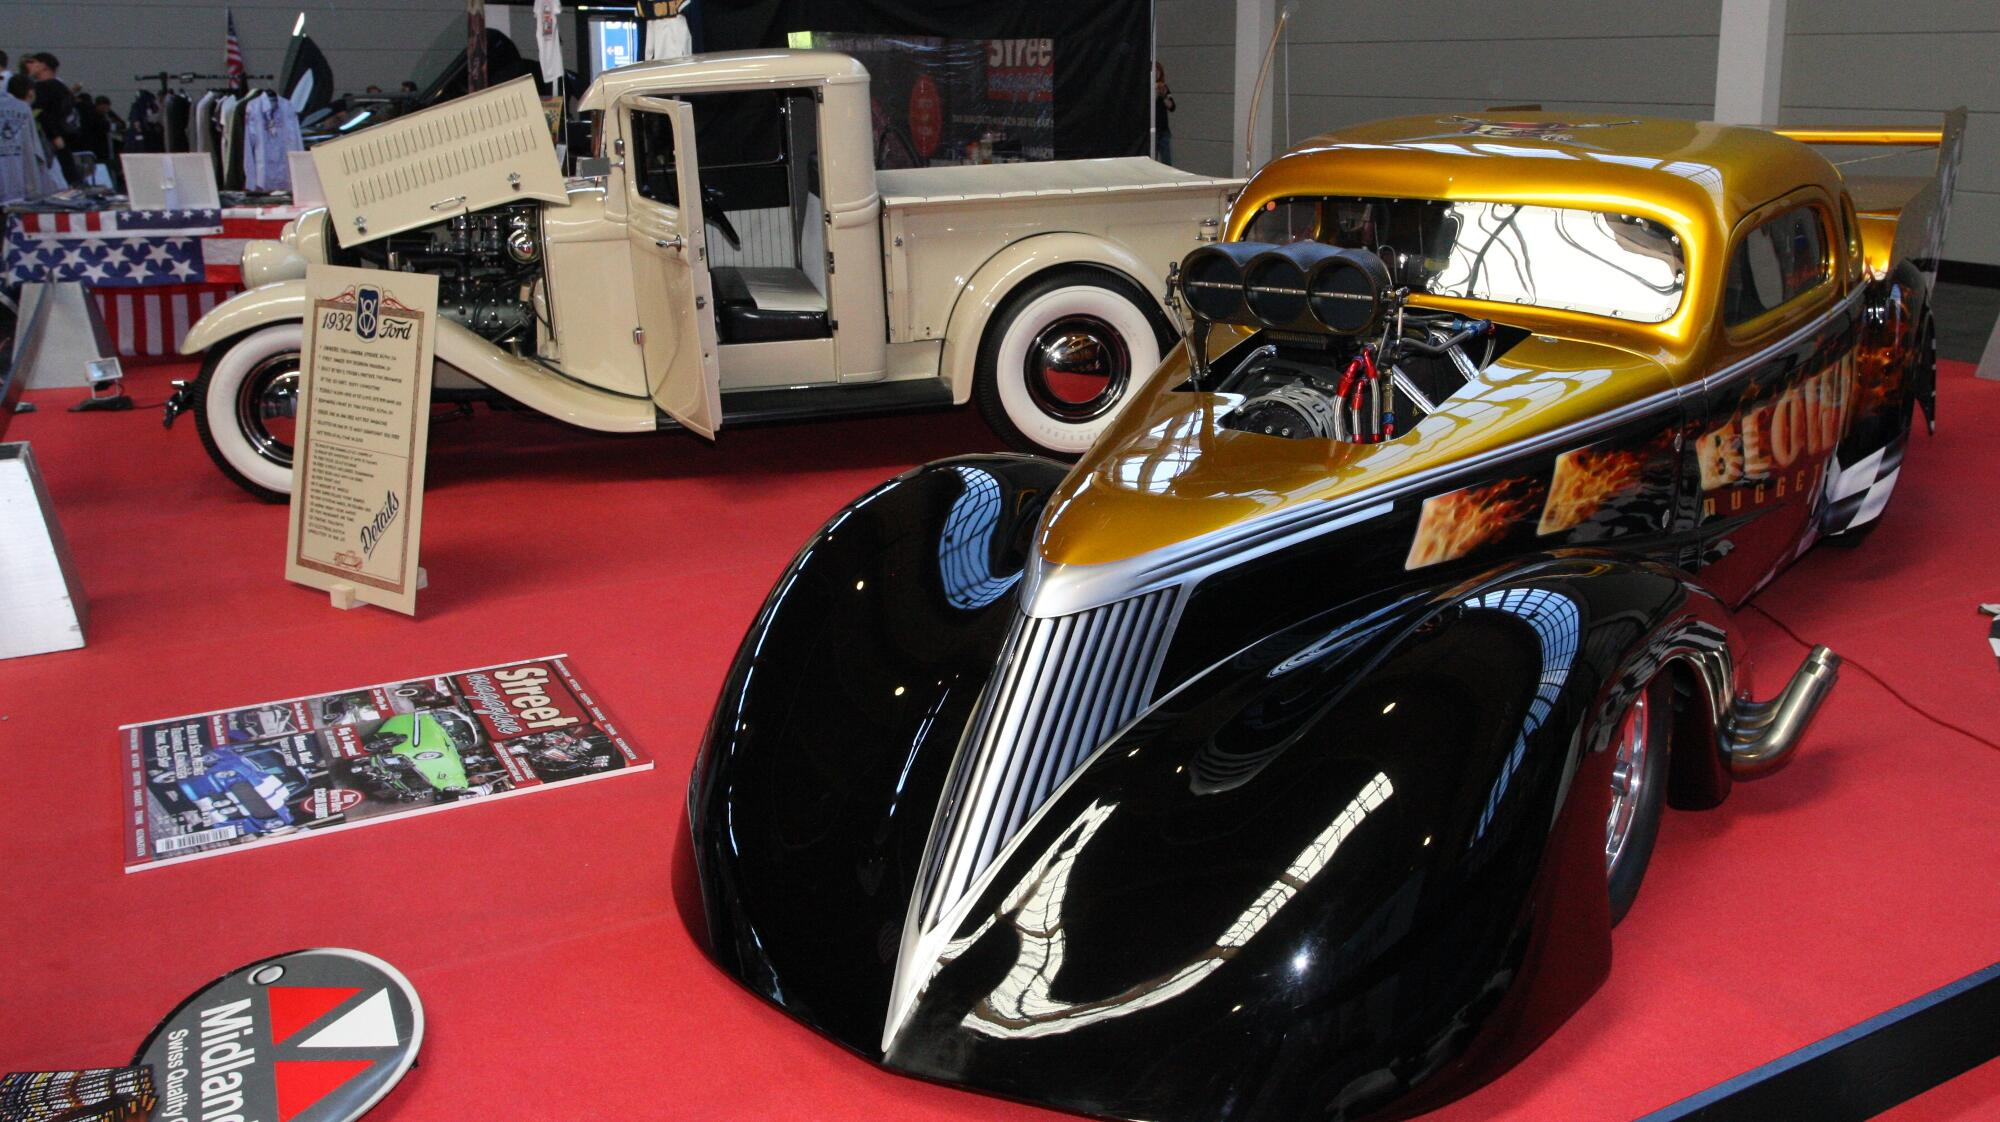 tuning-world-bodensee-2017-45